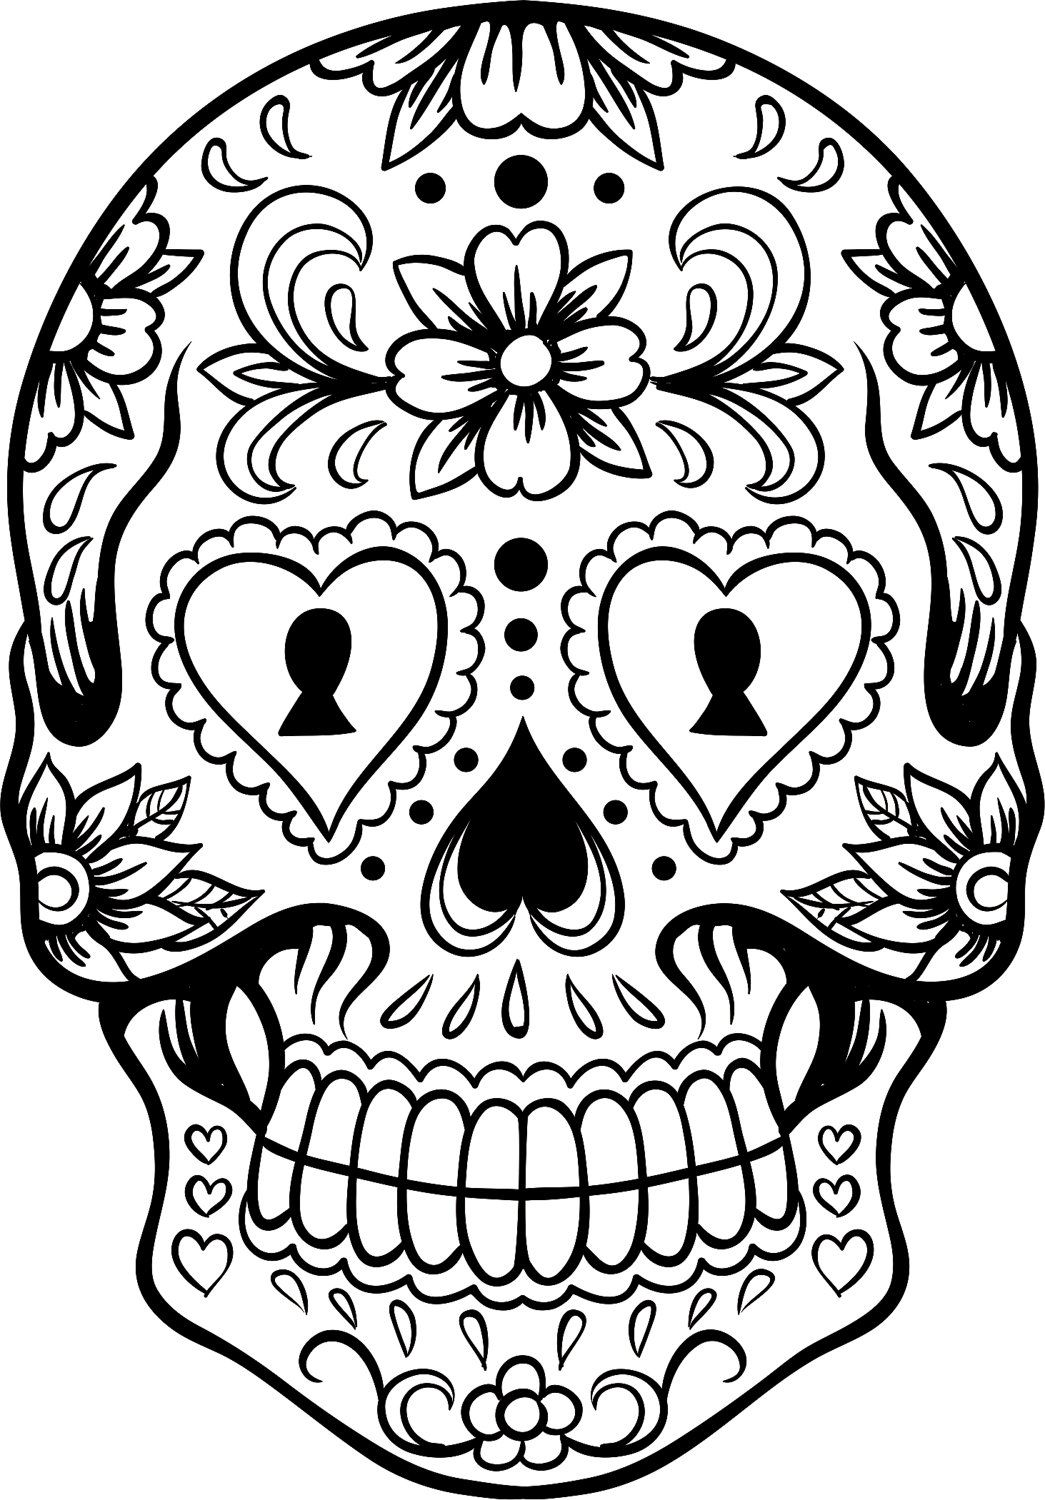 Pin By Cg On Tattoo Inspired Samples Skull Coloring Pages Skull Cool Coloring Pages